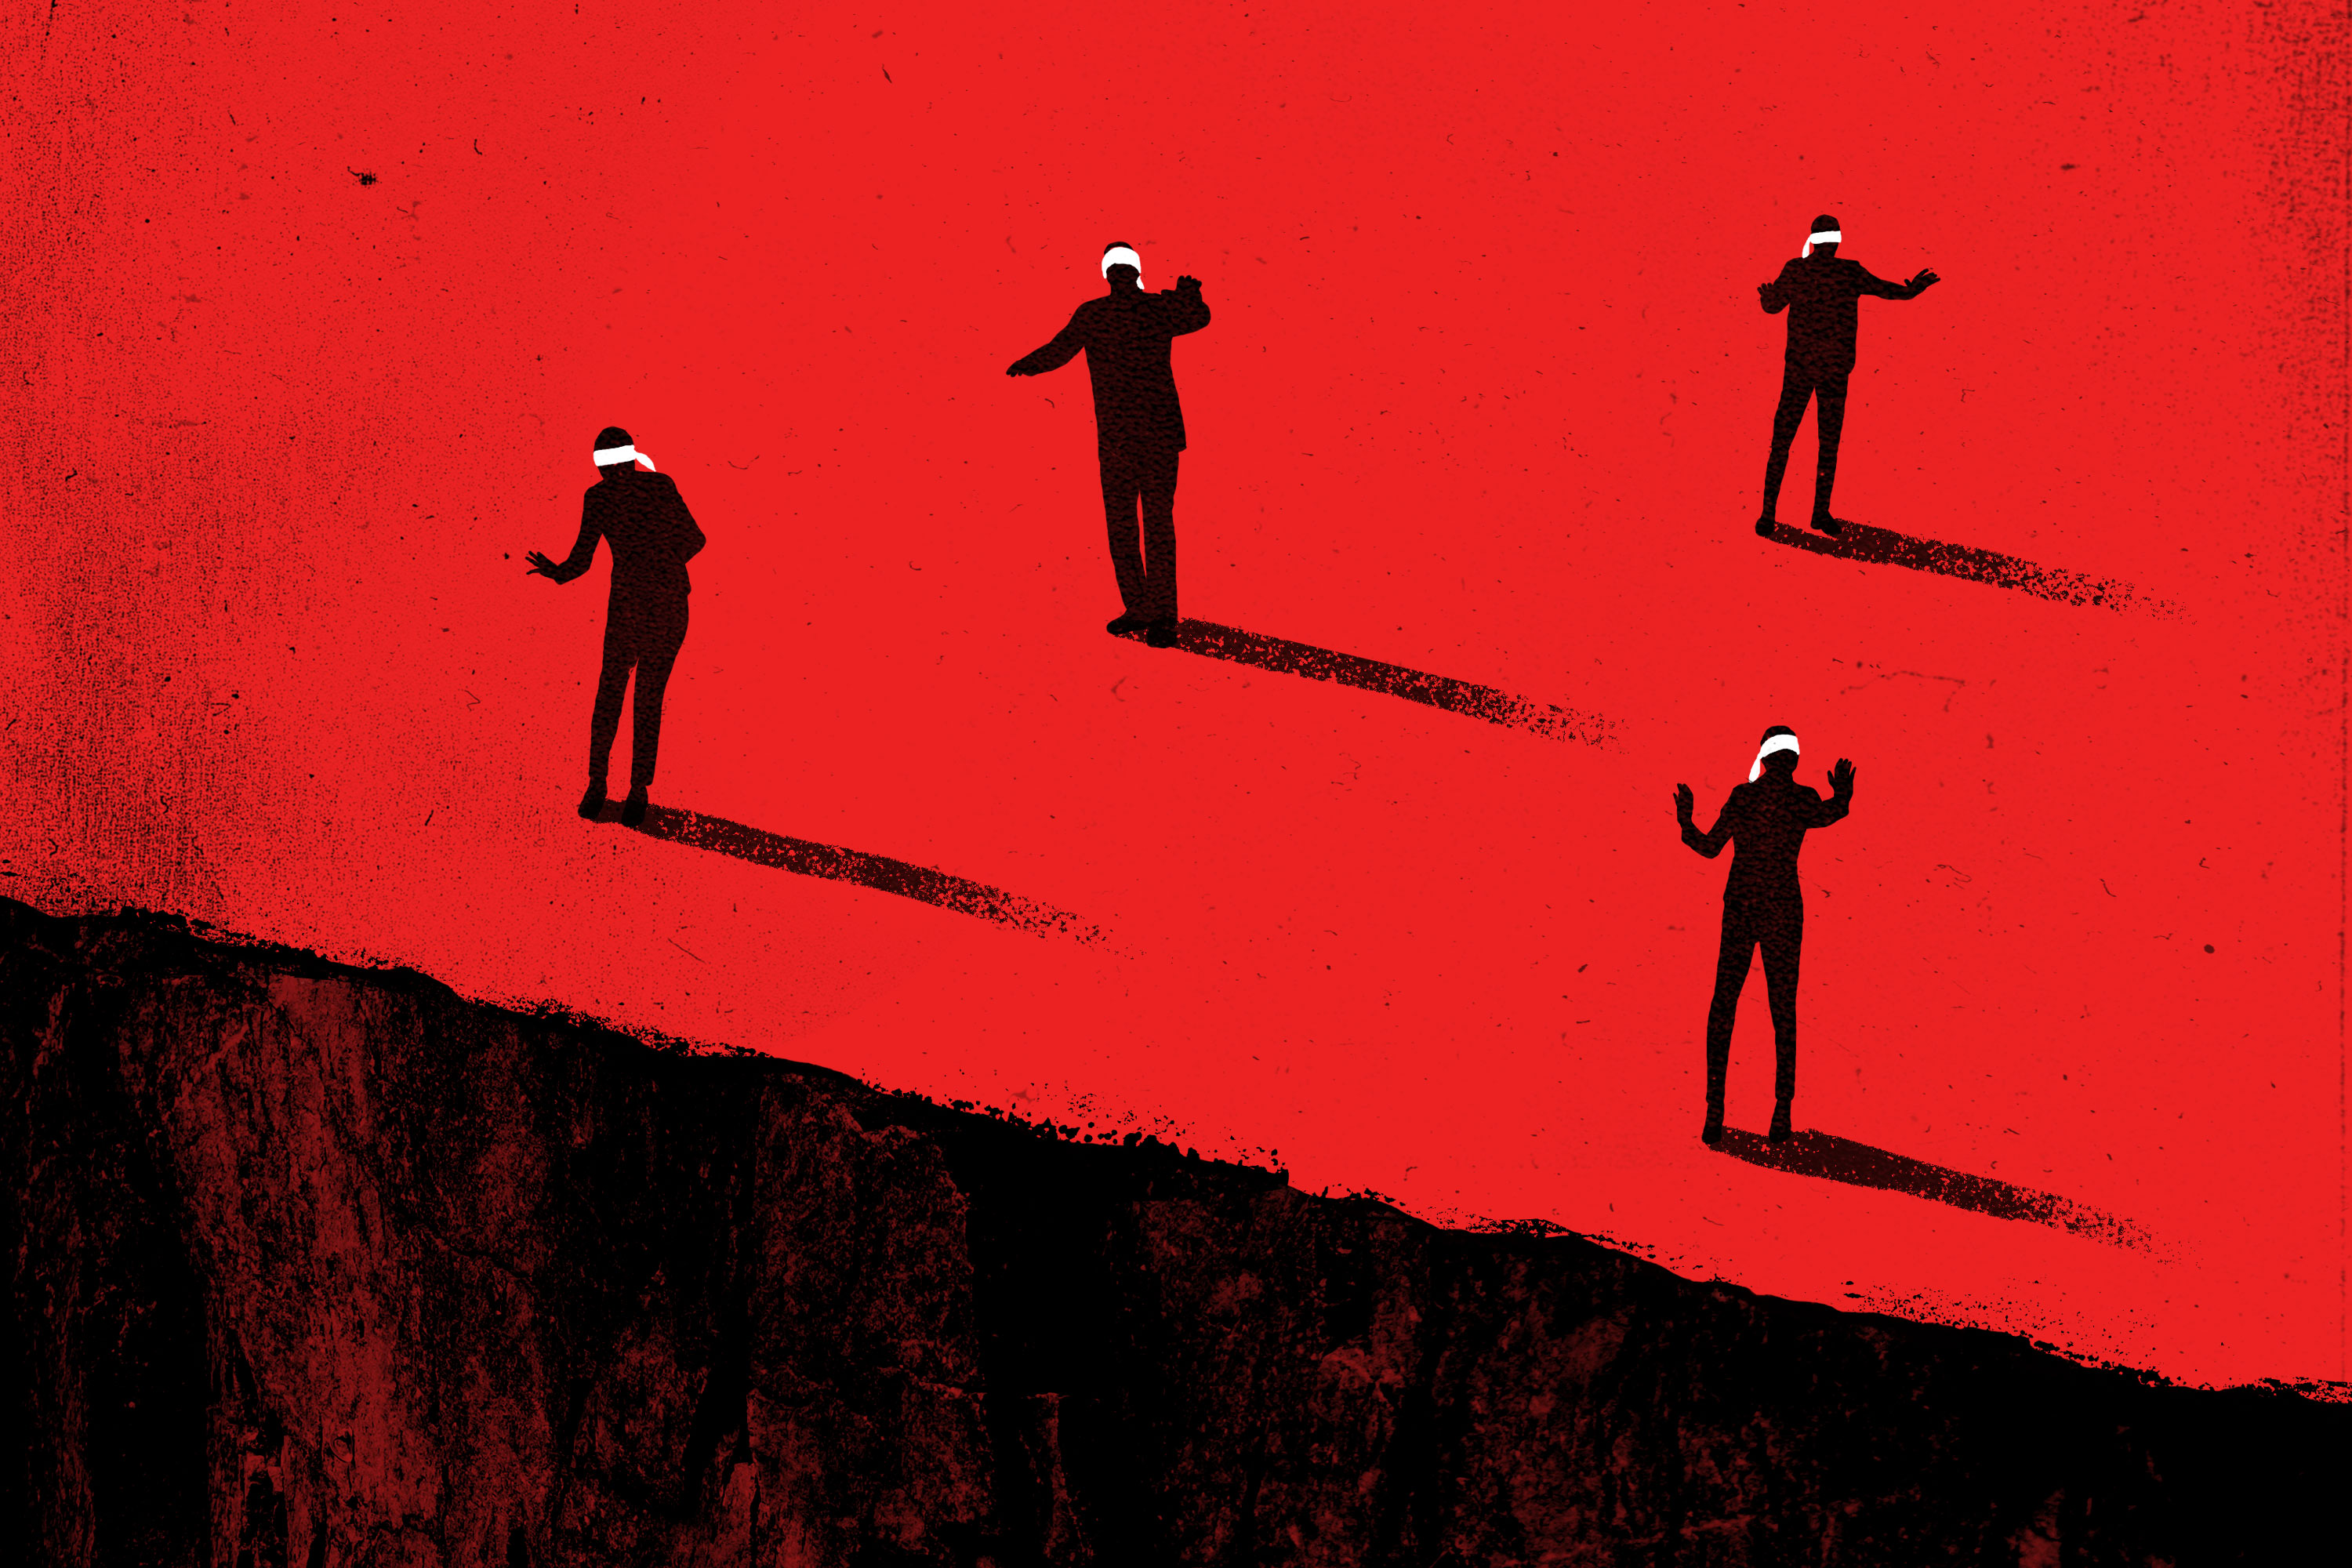 Illustration: Blindfolded people stumble around in a red landscape.